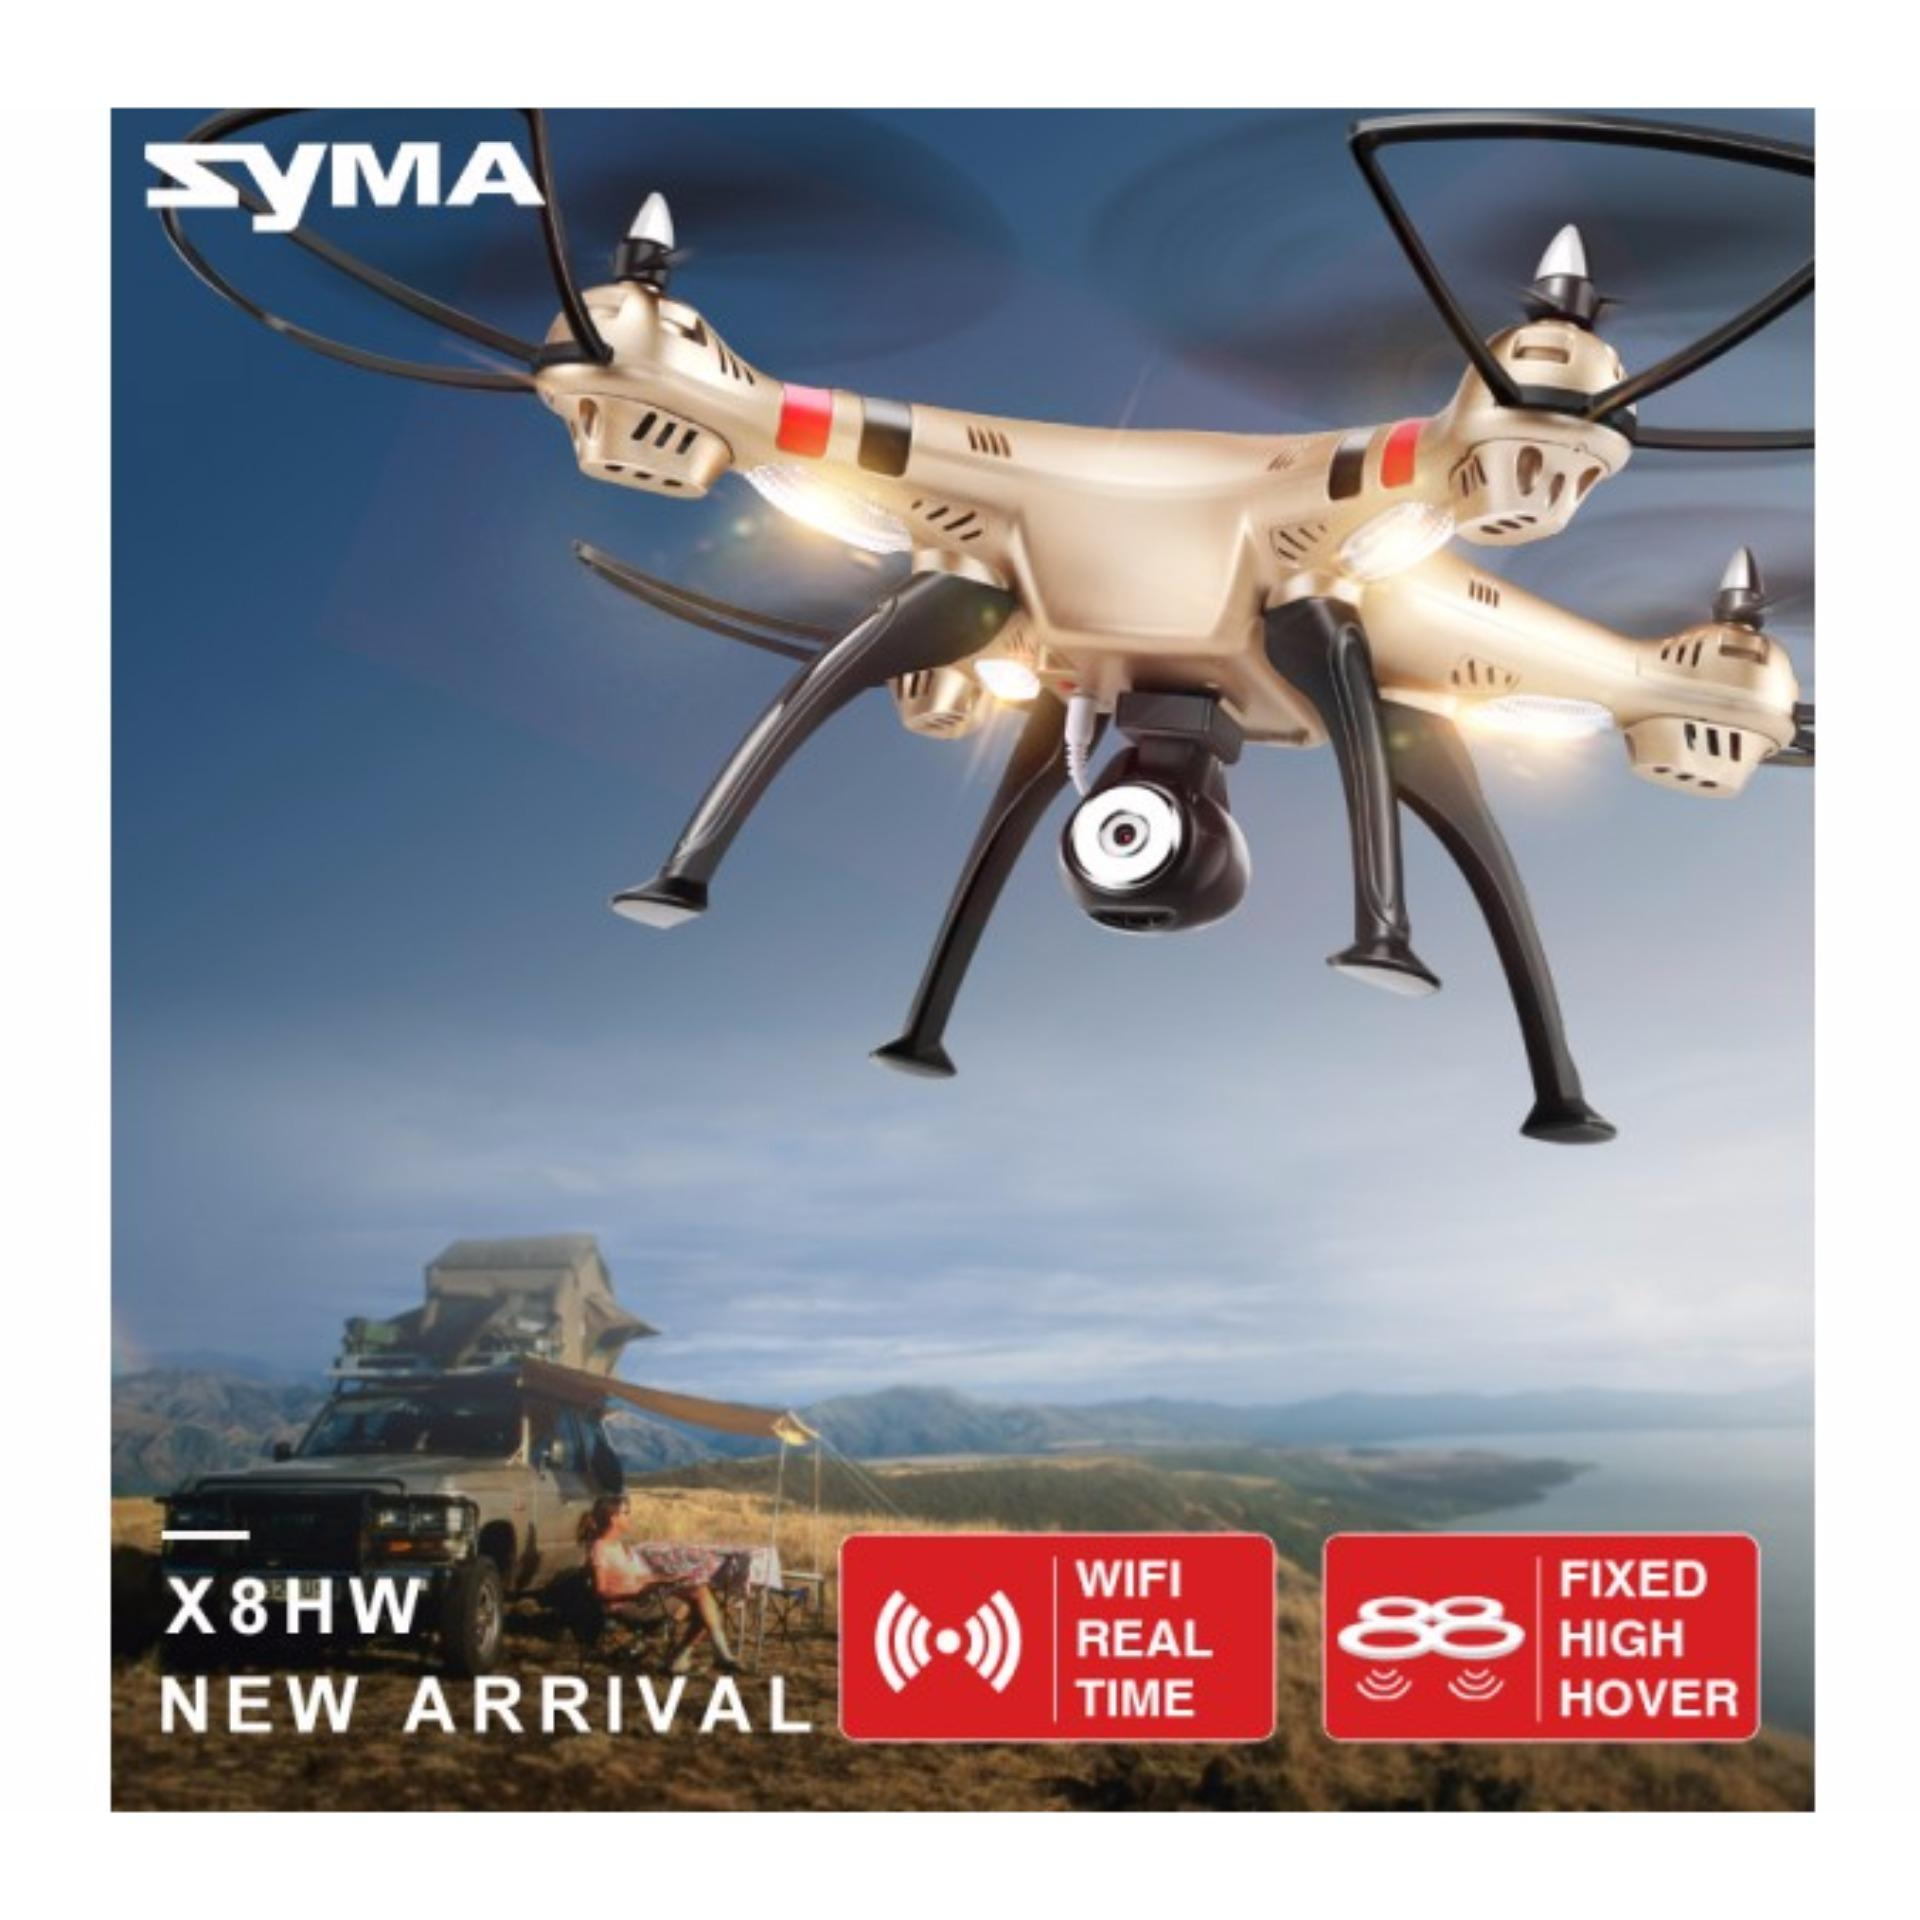 SYMA X8HW FPV RC Drone with WiFi HD 2MP Camera Real-time .